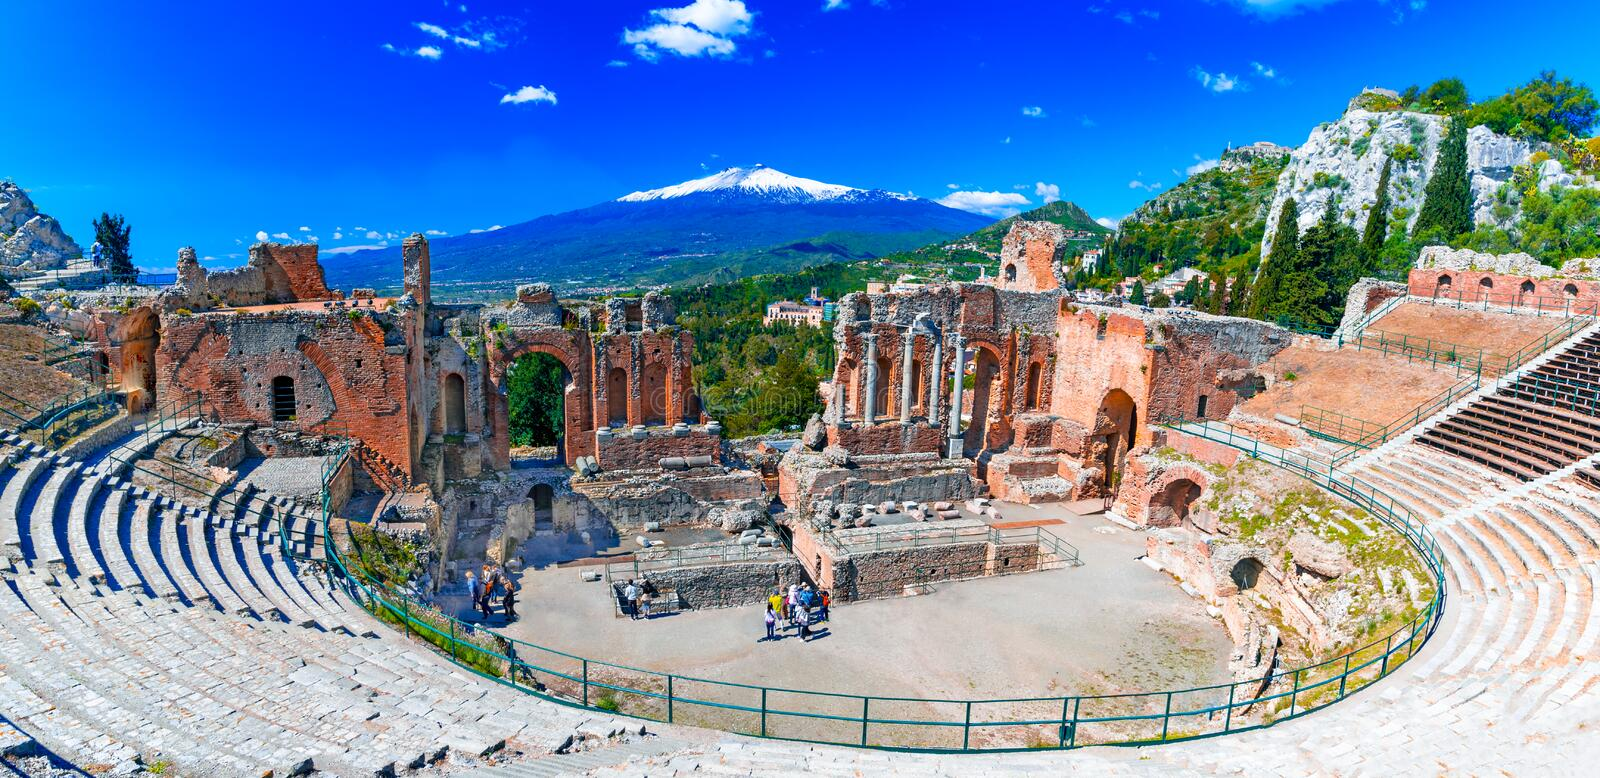 Taormina, Sicily, Italy: The Greek Theater of Taormina with smoking Etna volcano in background stock photography